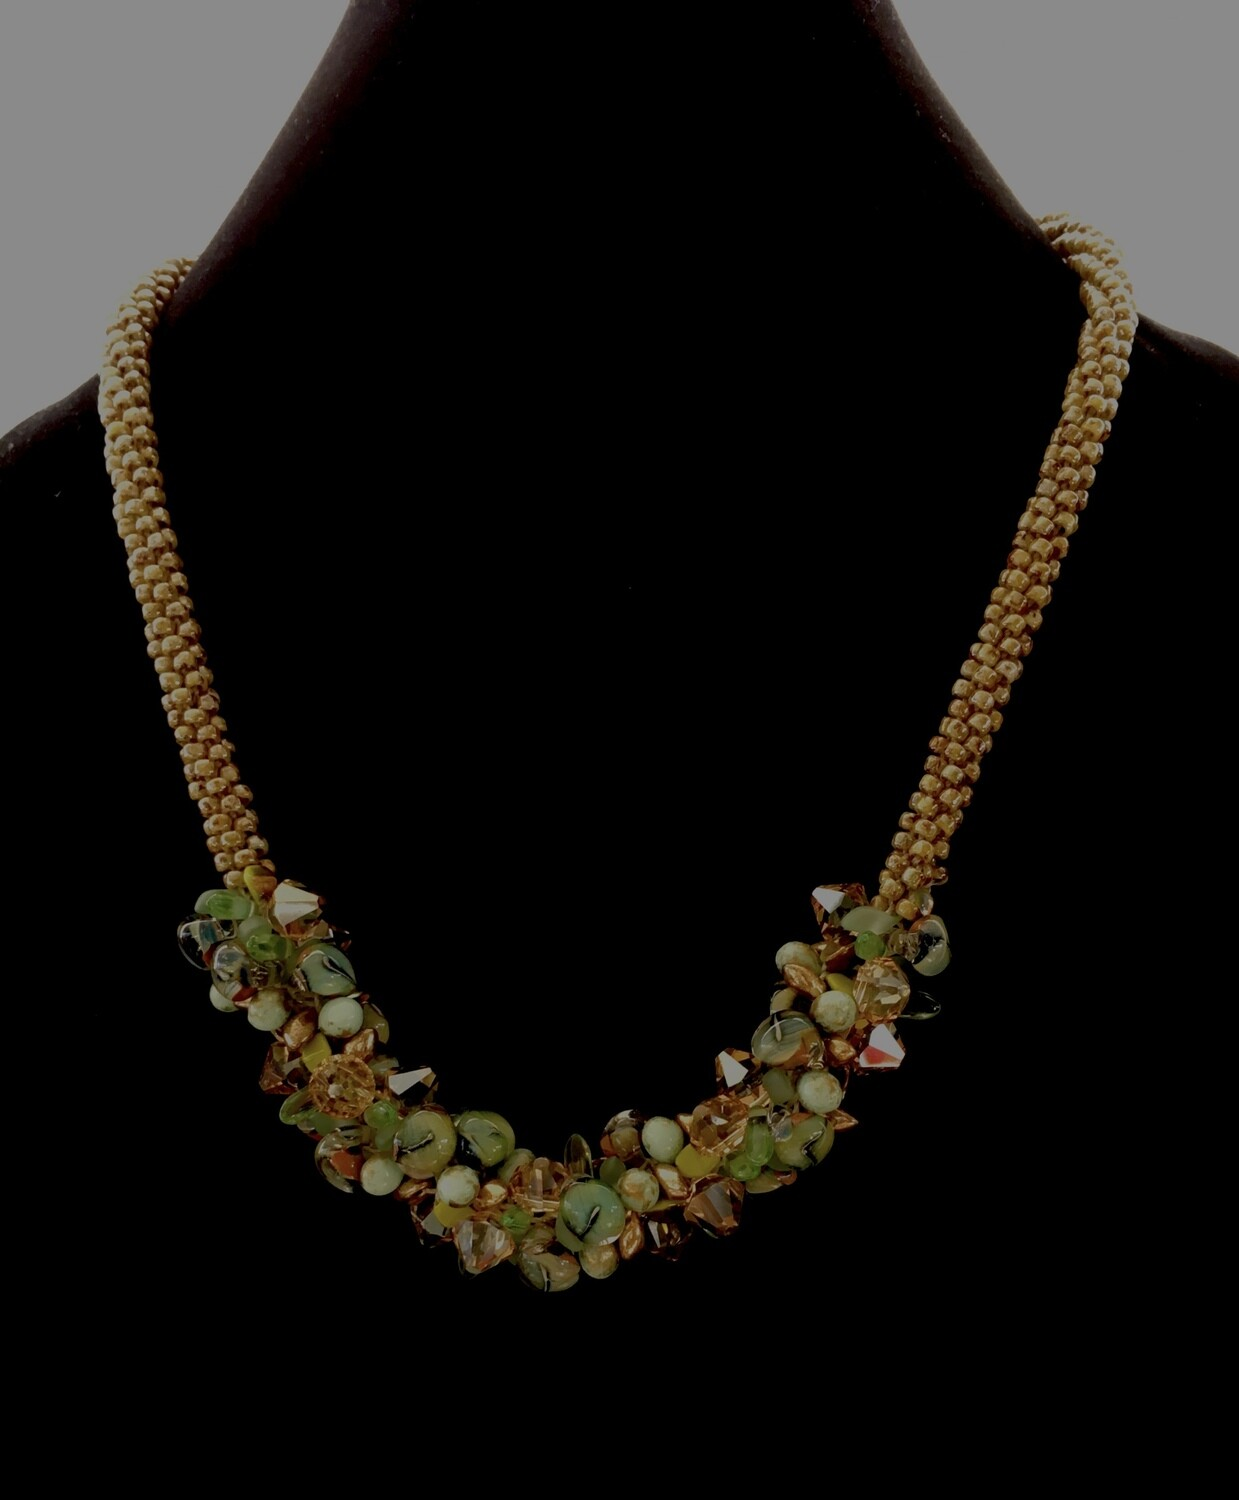 Kumihumo necklace with green floral cluster beads